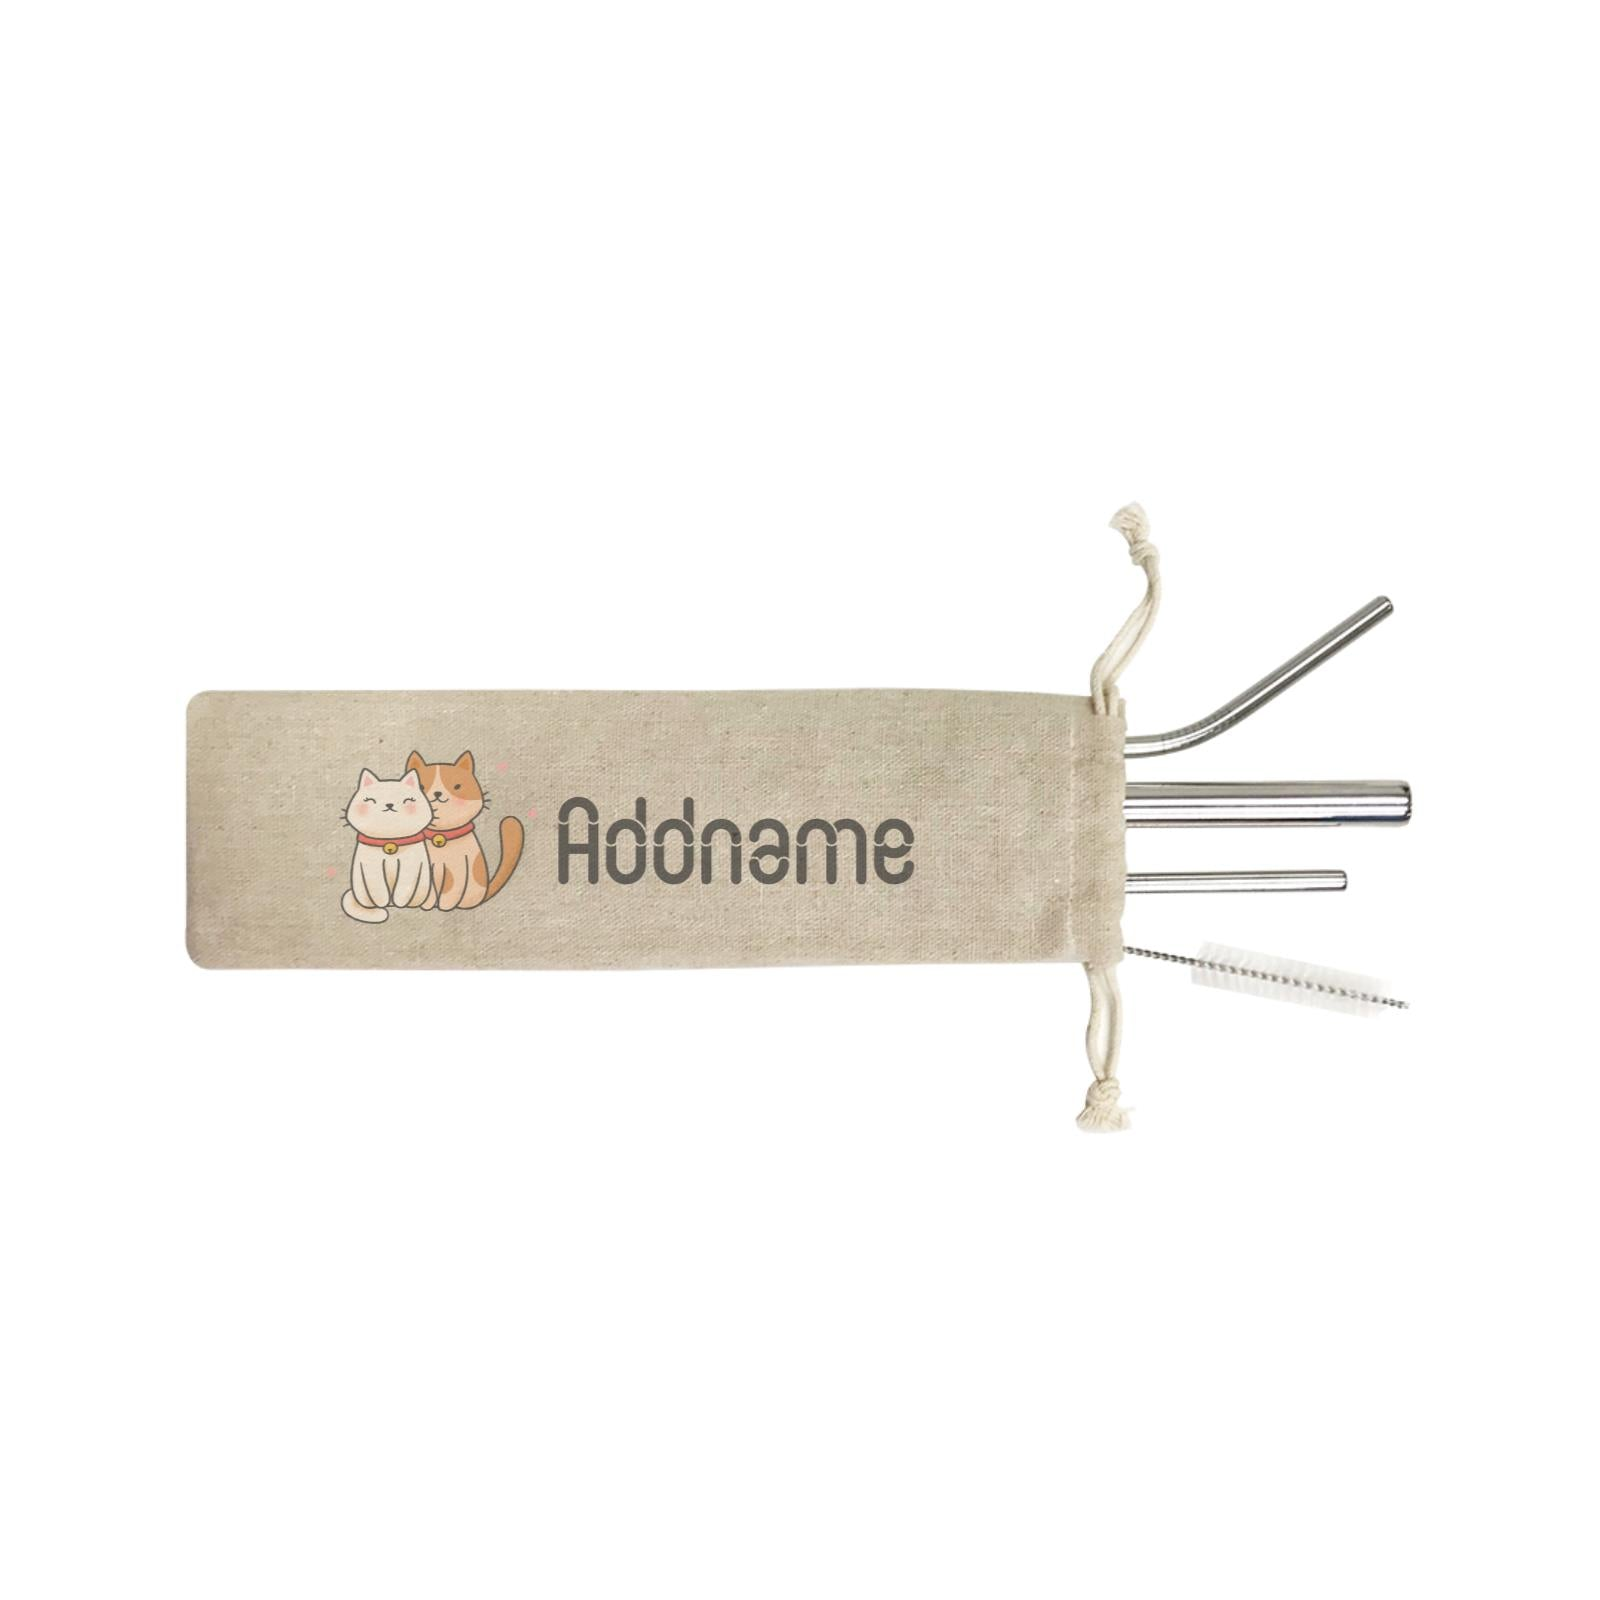 Cute Hand Drawn Style Couple Cat Addname ST SZP 4-In-1 Stainless Steel Straw Set in Satchel